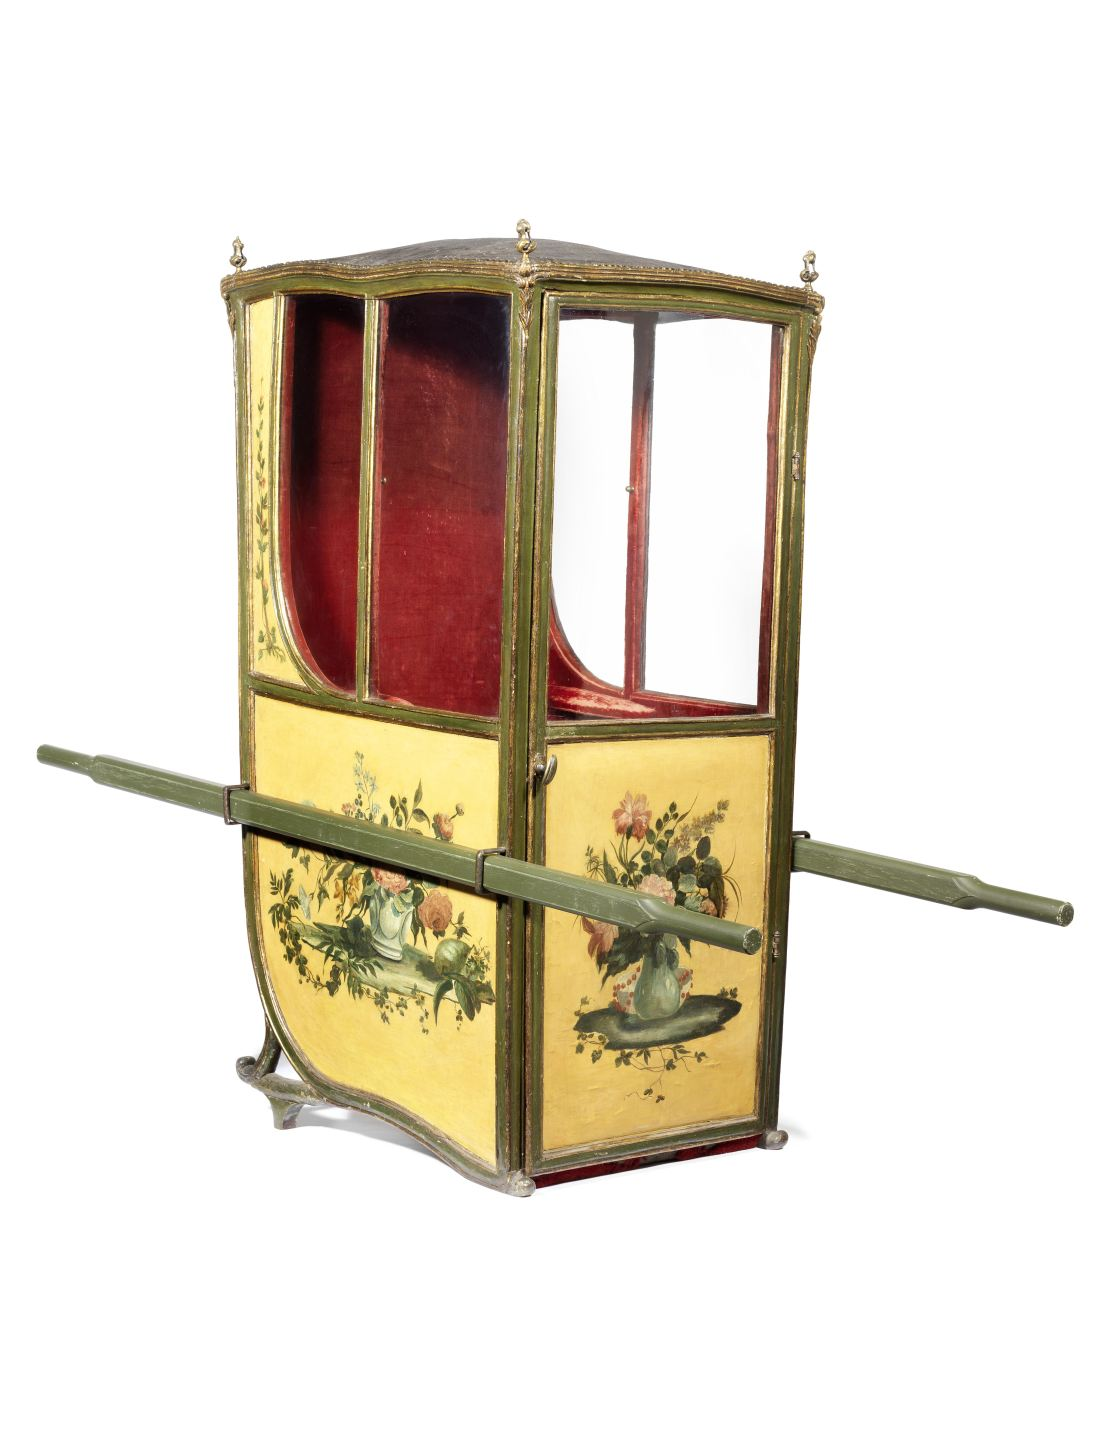 A French late 19th century polychrome decorated and parcel gilt sedan chair.